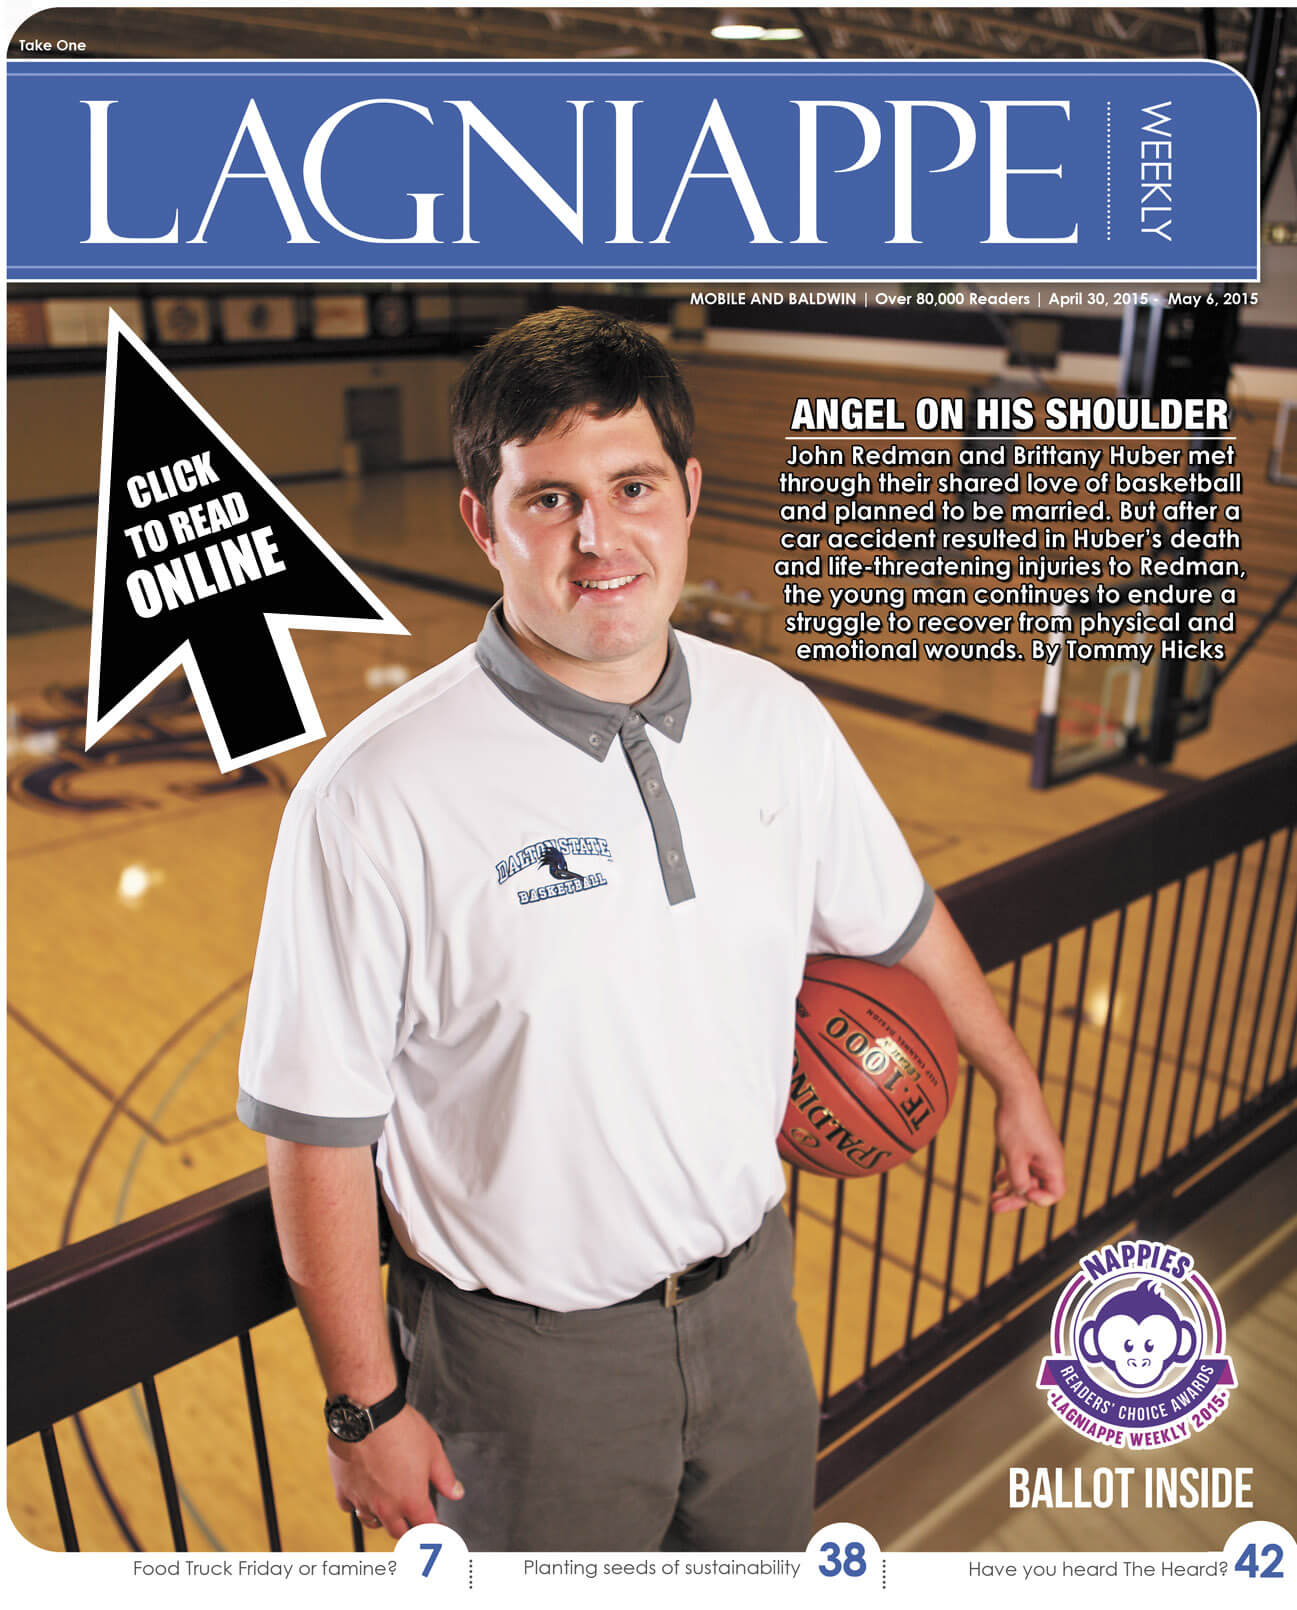 Lagniappe April 30-May 6, 2015